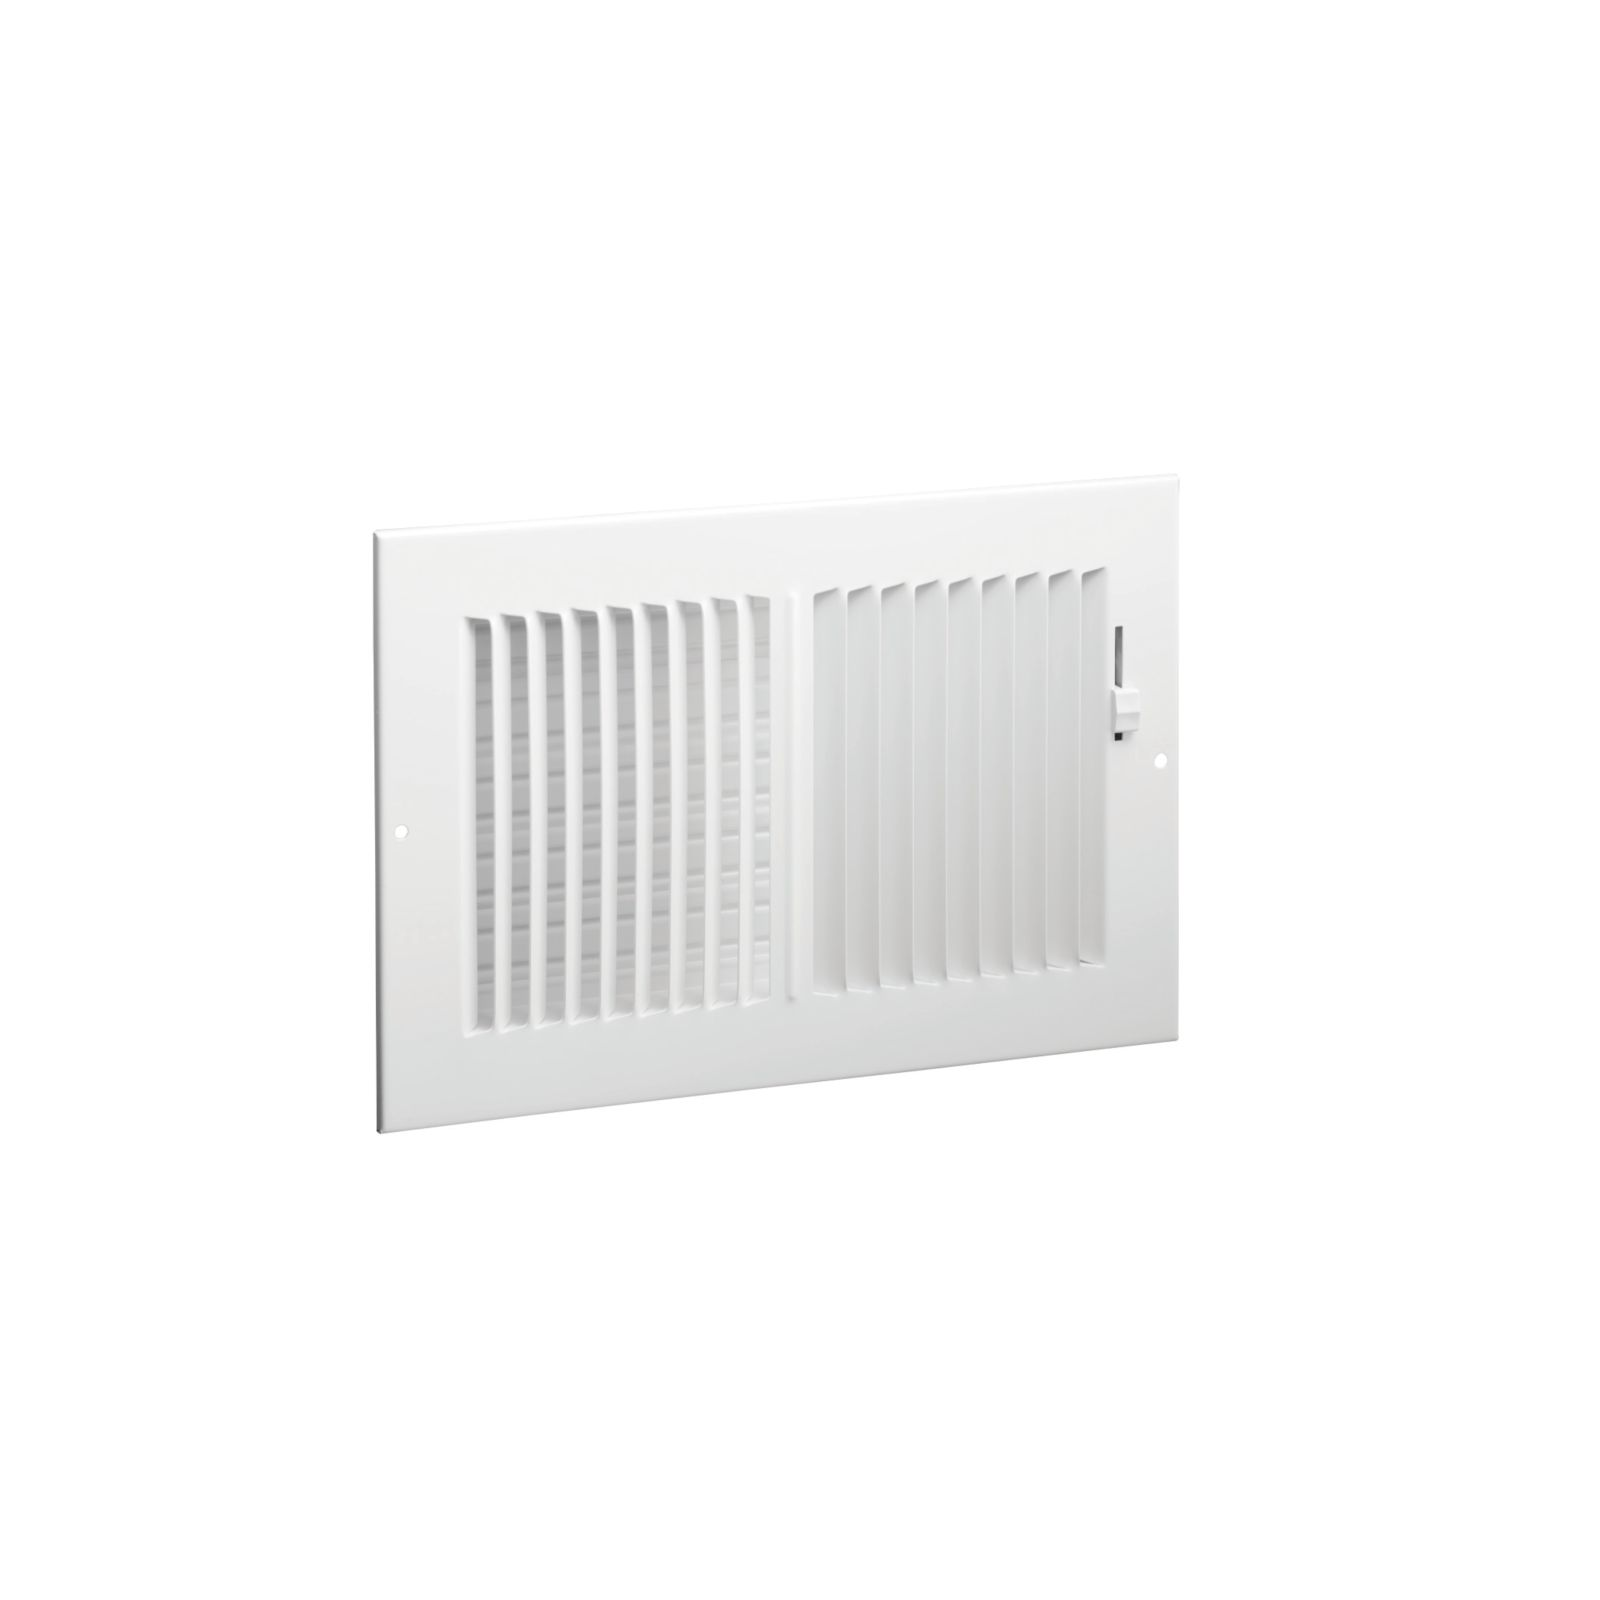 "Hart & Cooley 703911 - #682M Steel 2-Way Sidewall/Ceiling Register, Multi-Shutter Damper with Metal Handle, White, 12"" X 4"""